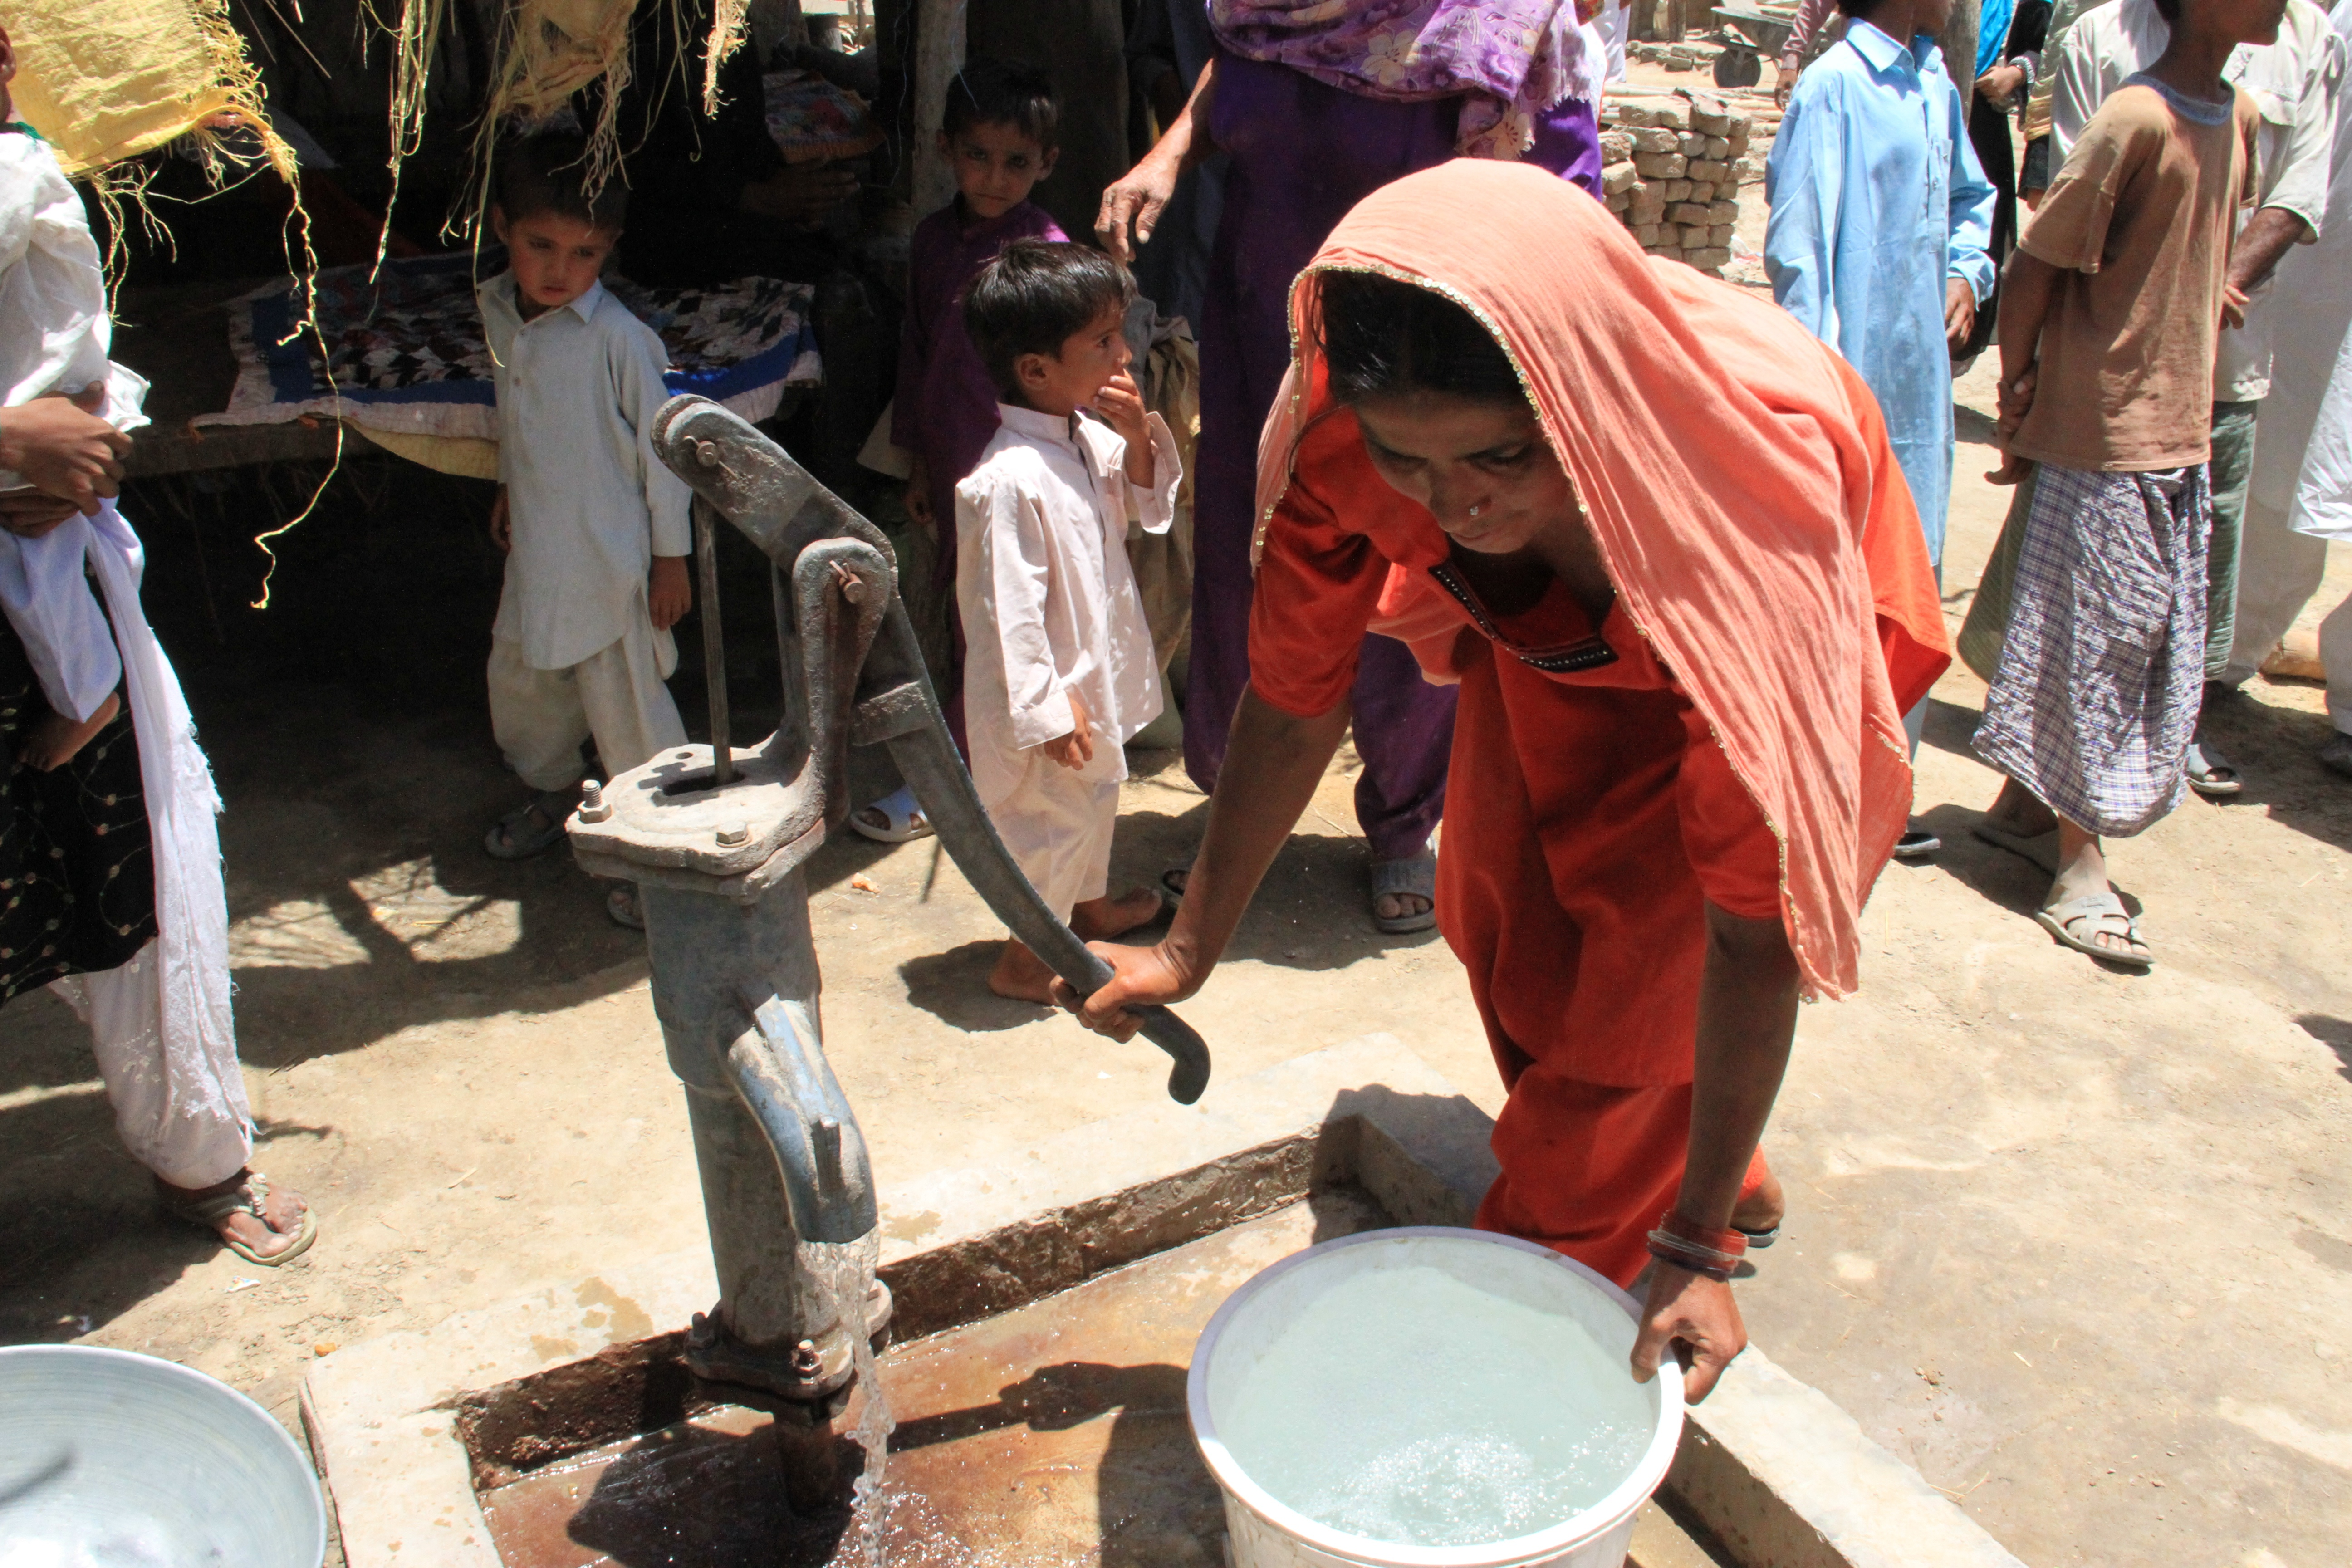 HRW: millions in Bangladesh affected by arsenic poisoning in water